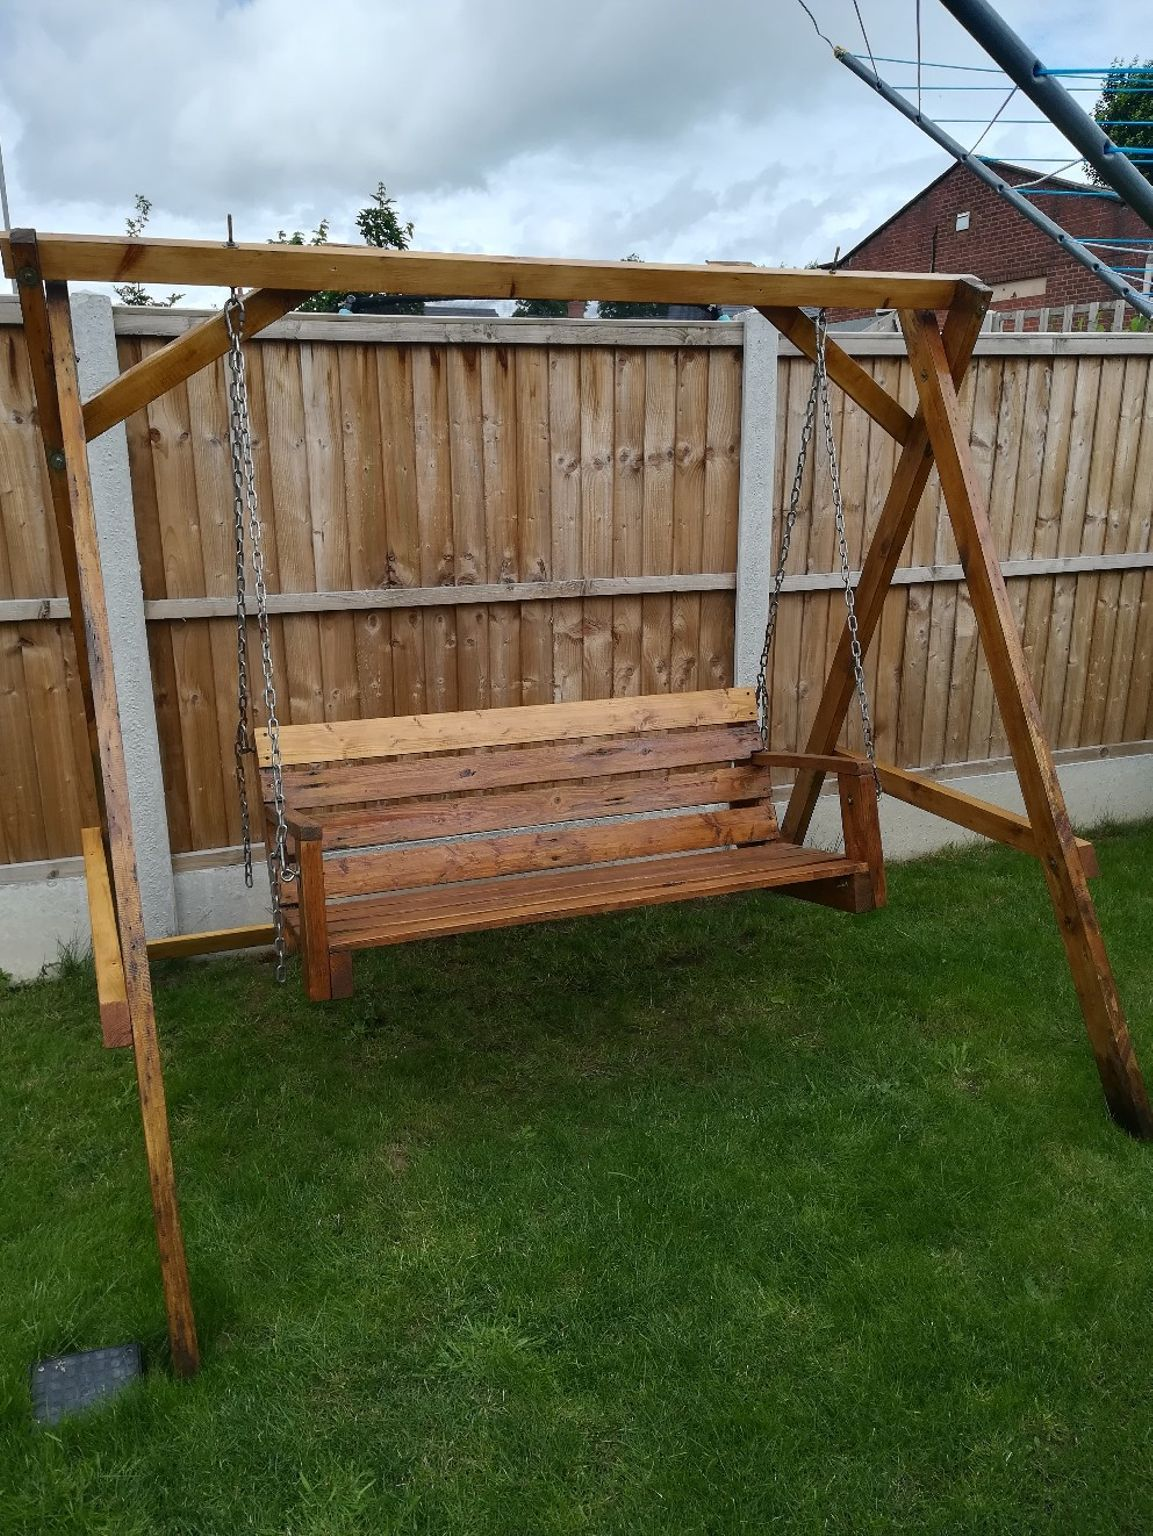 A wooden garden swing ue discover shpock for more beautiful